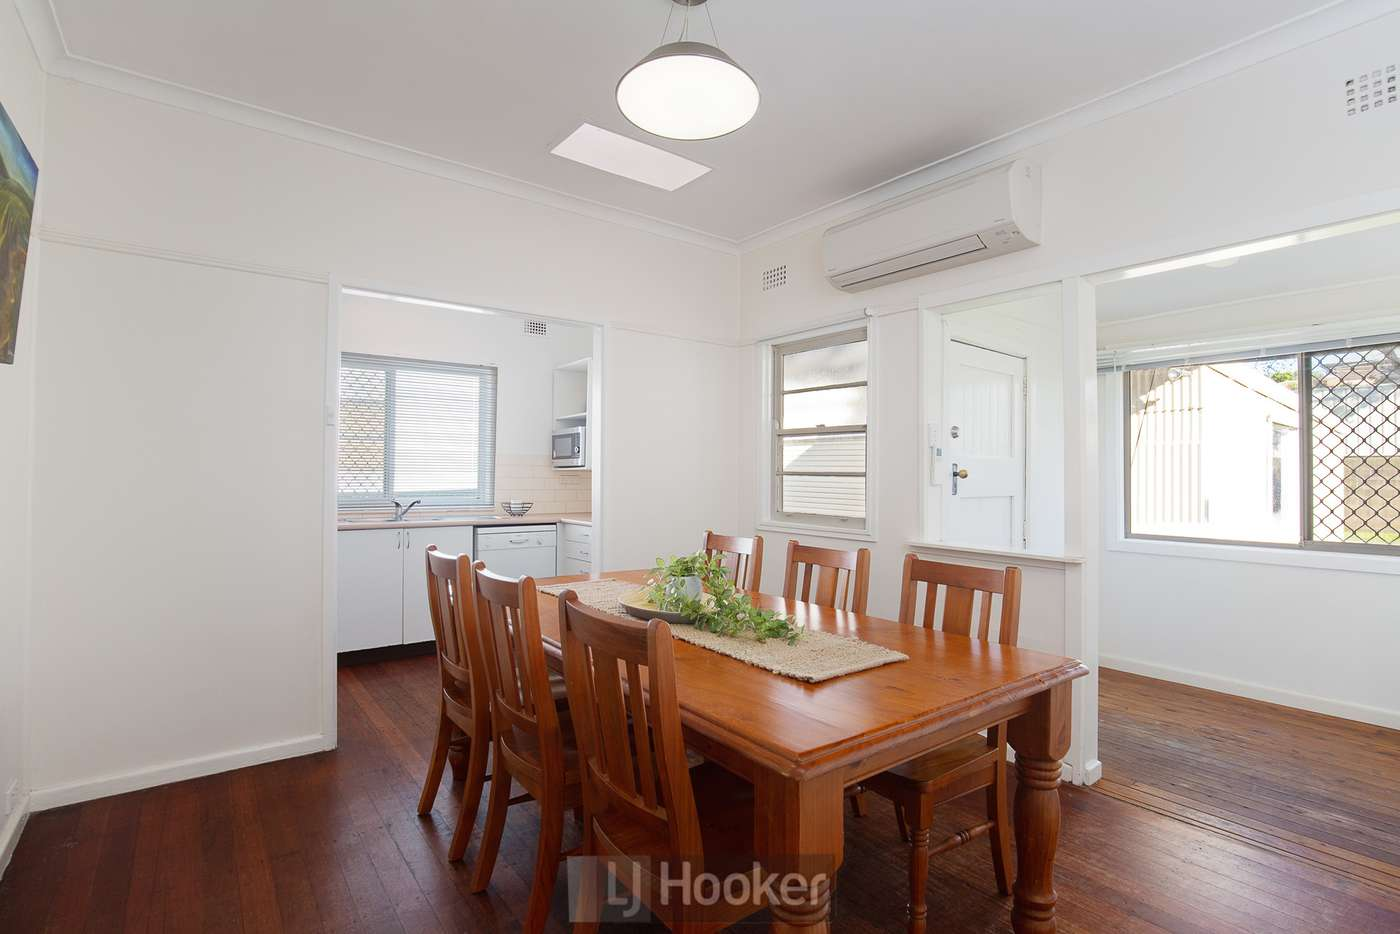 Fifth view of Homely house listing, 8 Richard Street, Adamstown NSW 2289